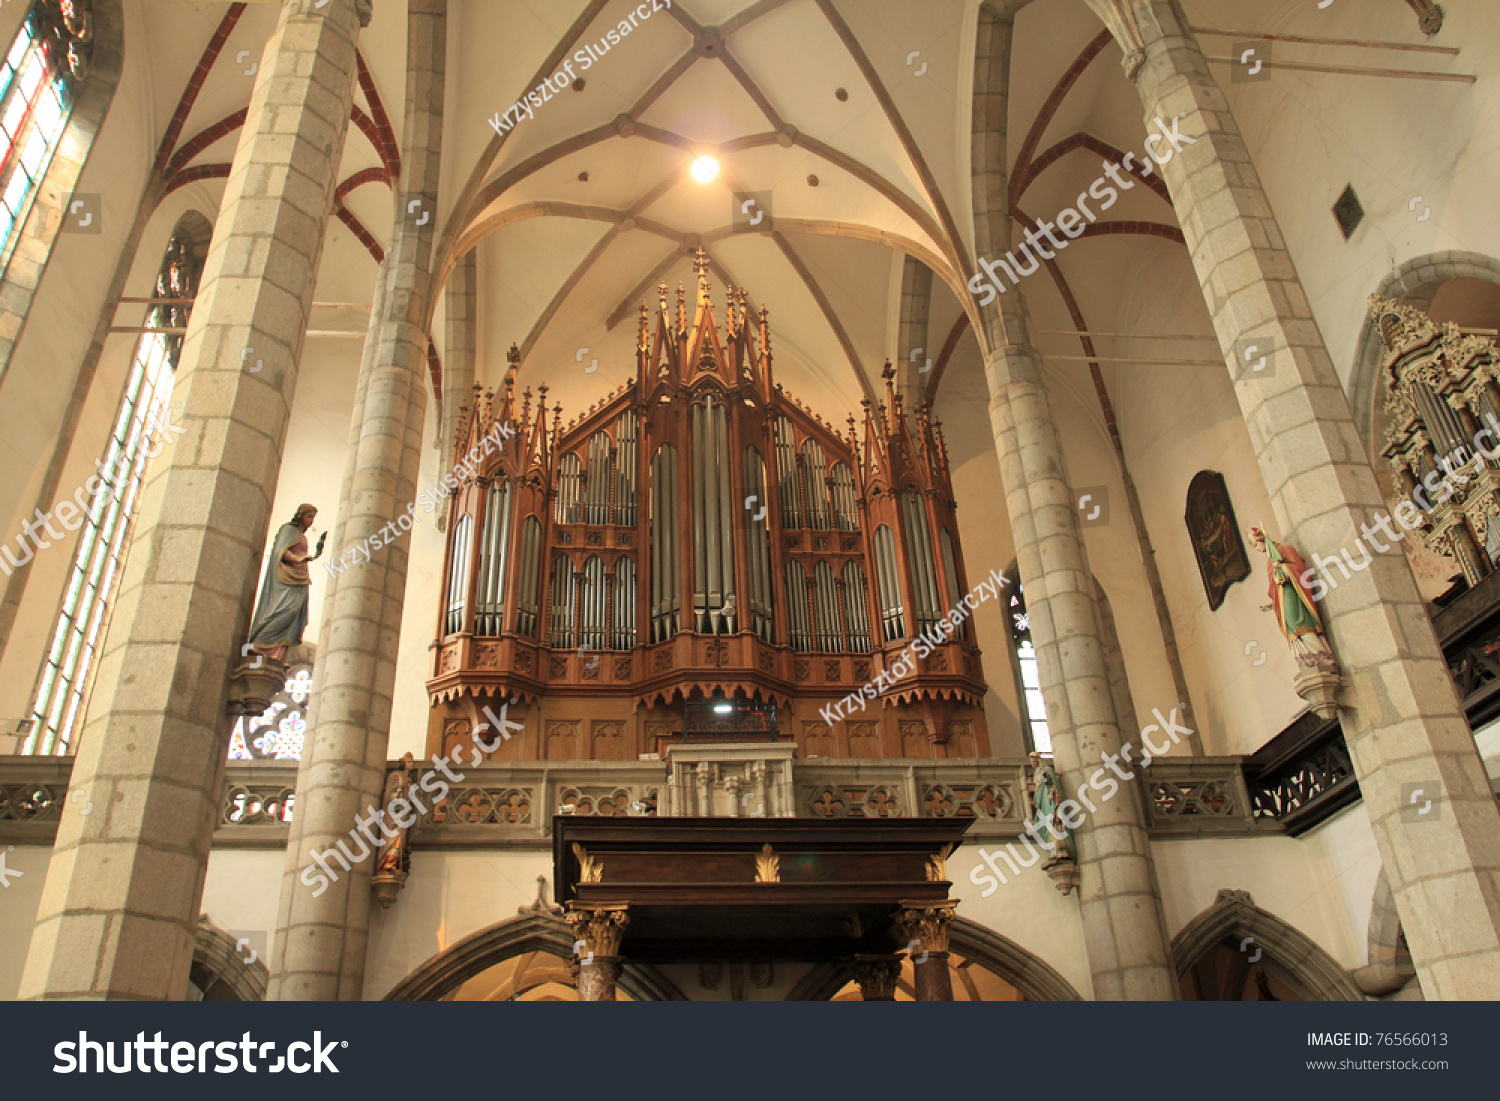 Interior Of Gothic Revival Church St Vitus